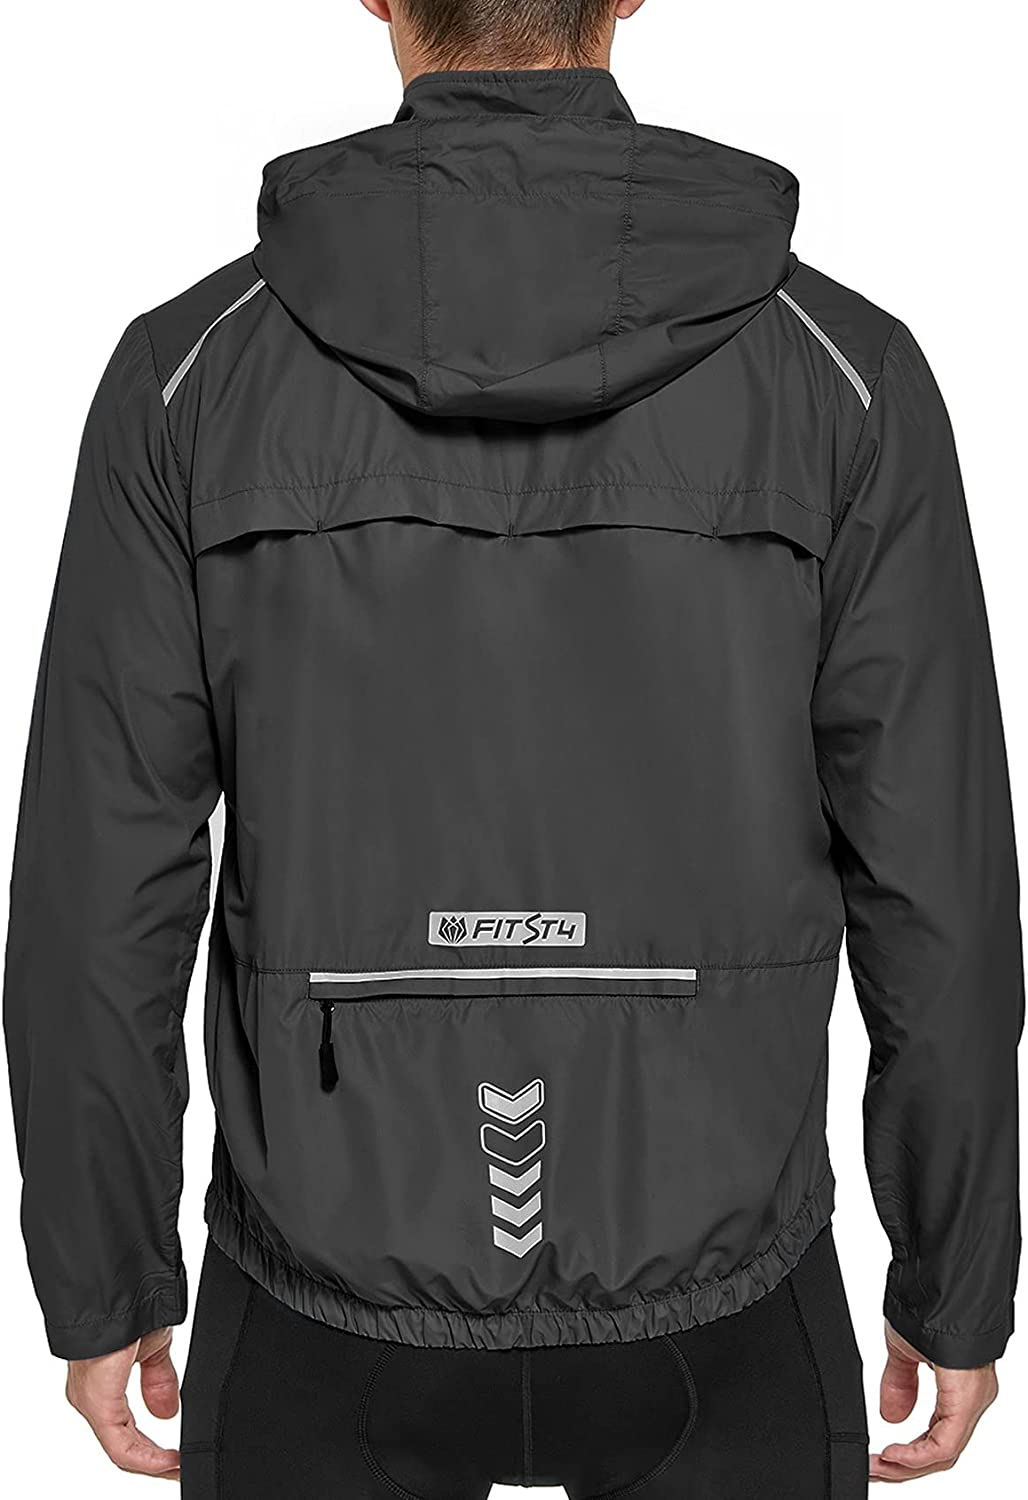 FitsT4 Men's Cycling Phoenix Mall Running Resistant Jackets Popular shop is the lowest price challenge Windbreaker Water